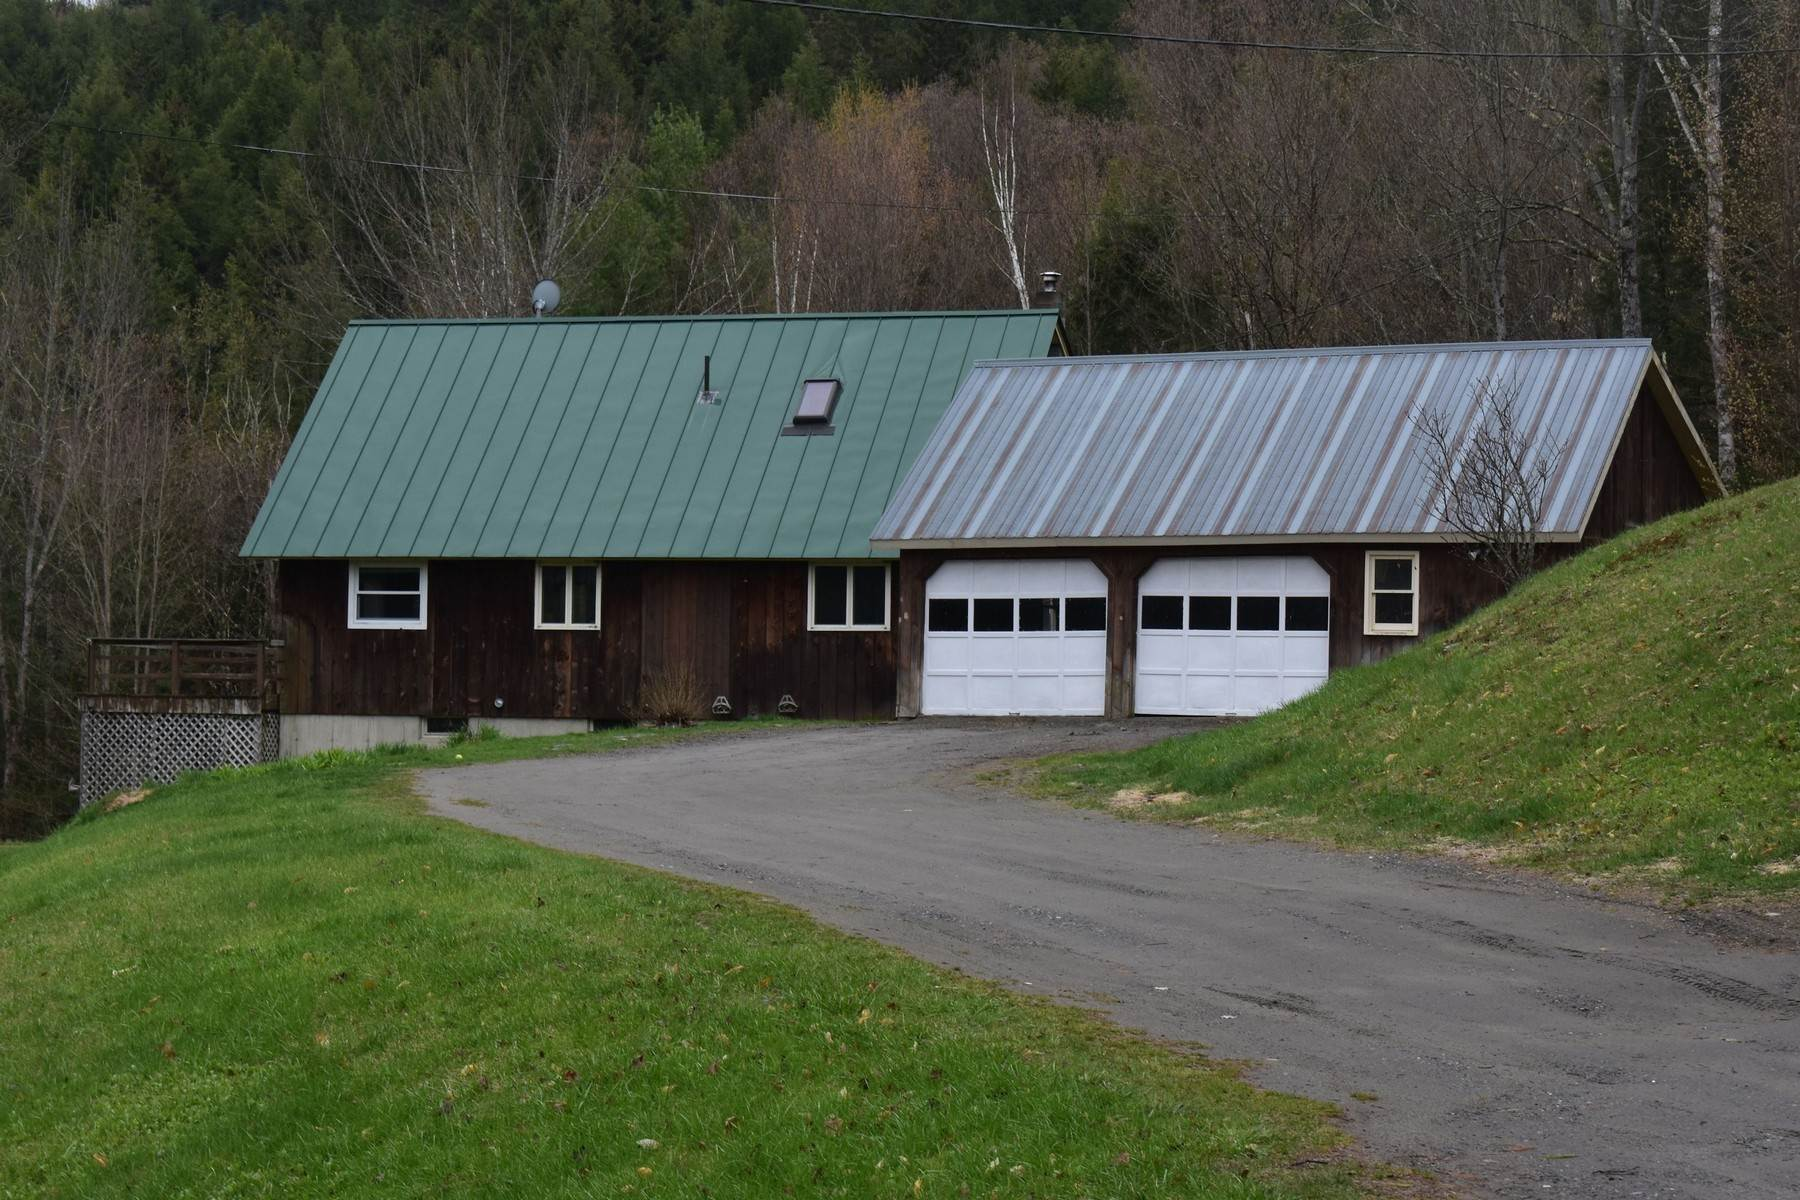 Property for Sale at 6062 Vt Route 66 Route Randolph, Vermont 05061 United States